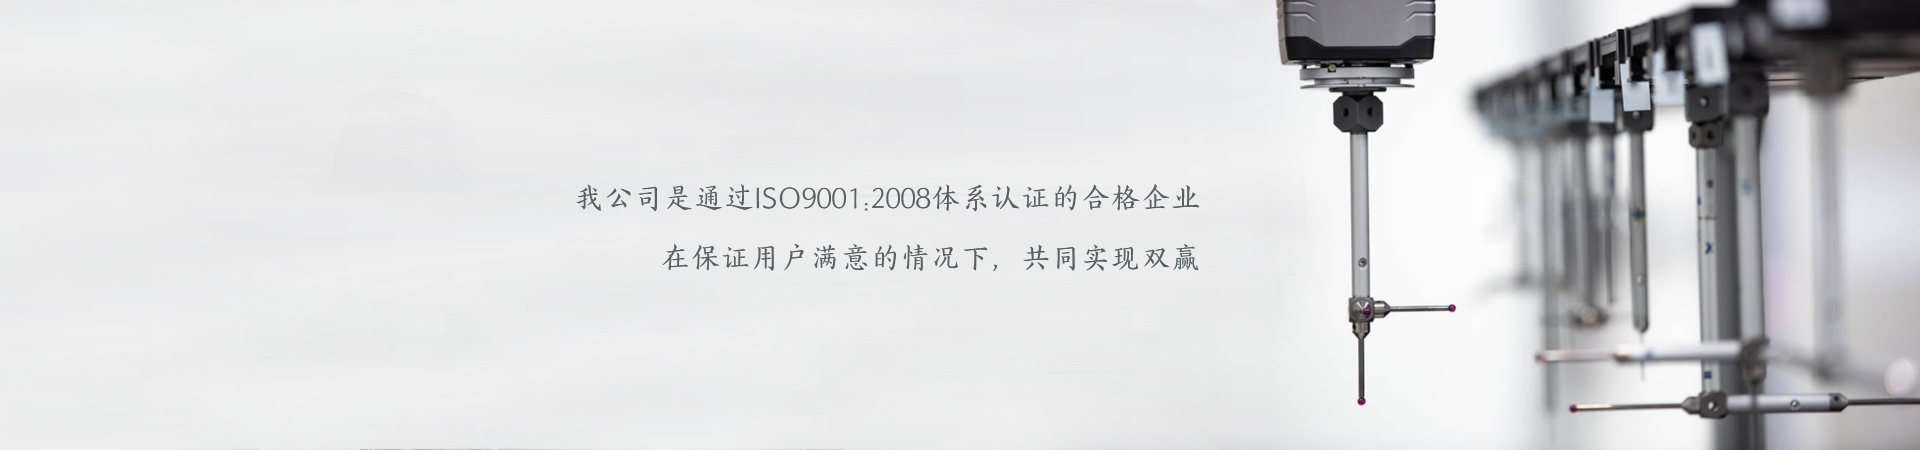 http://www.hchymj.cn/data/upload/202003/20200309184834_288.jpg